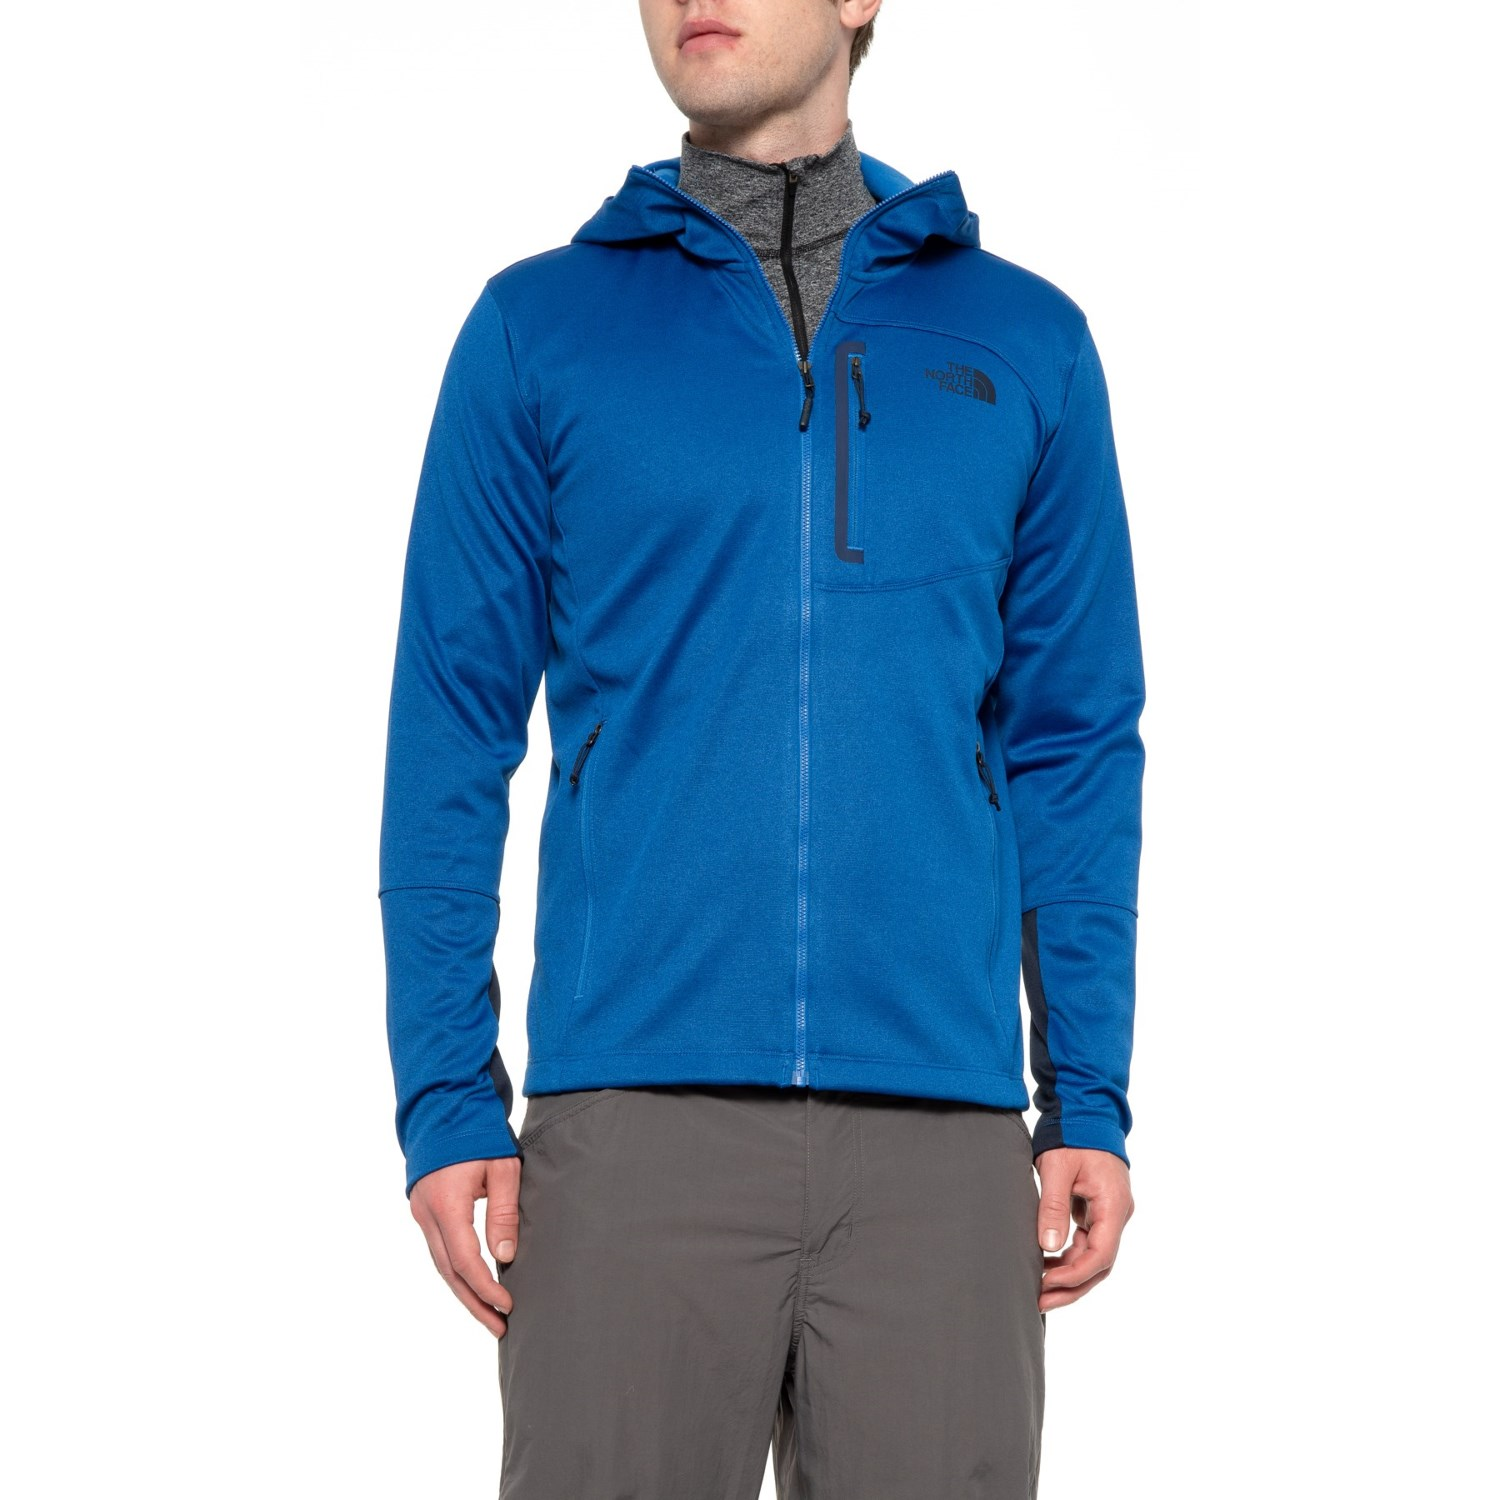 b57415bfe The North Face Canyonlands Hoodie - Full Zip (For Men)